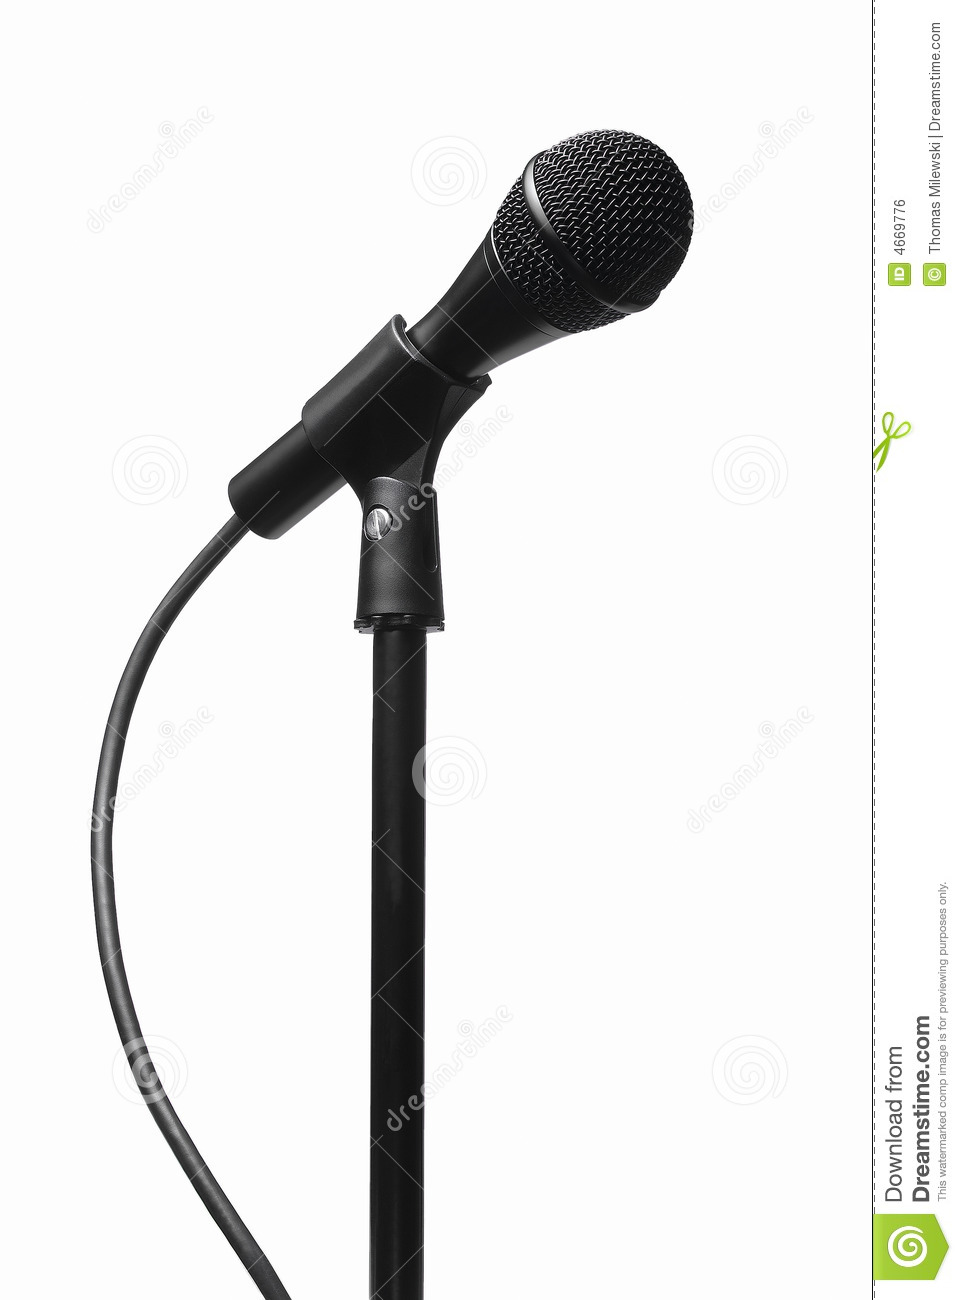 962x1300 Microphone Stand Clipart